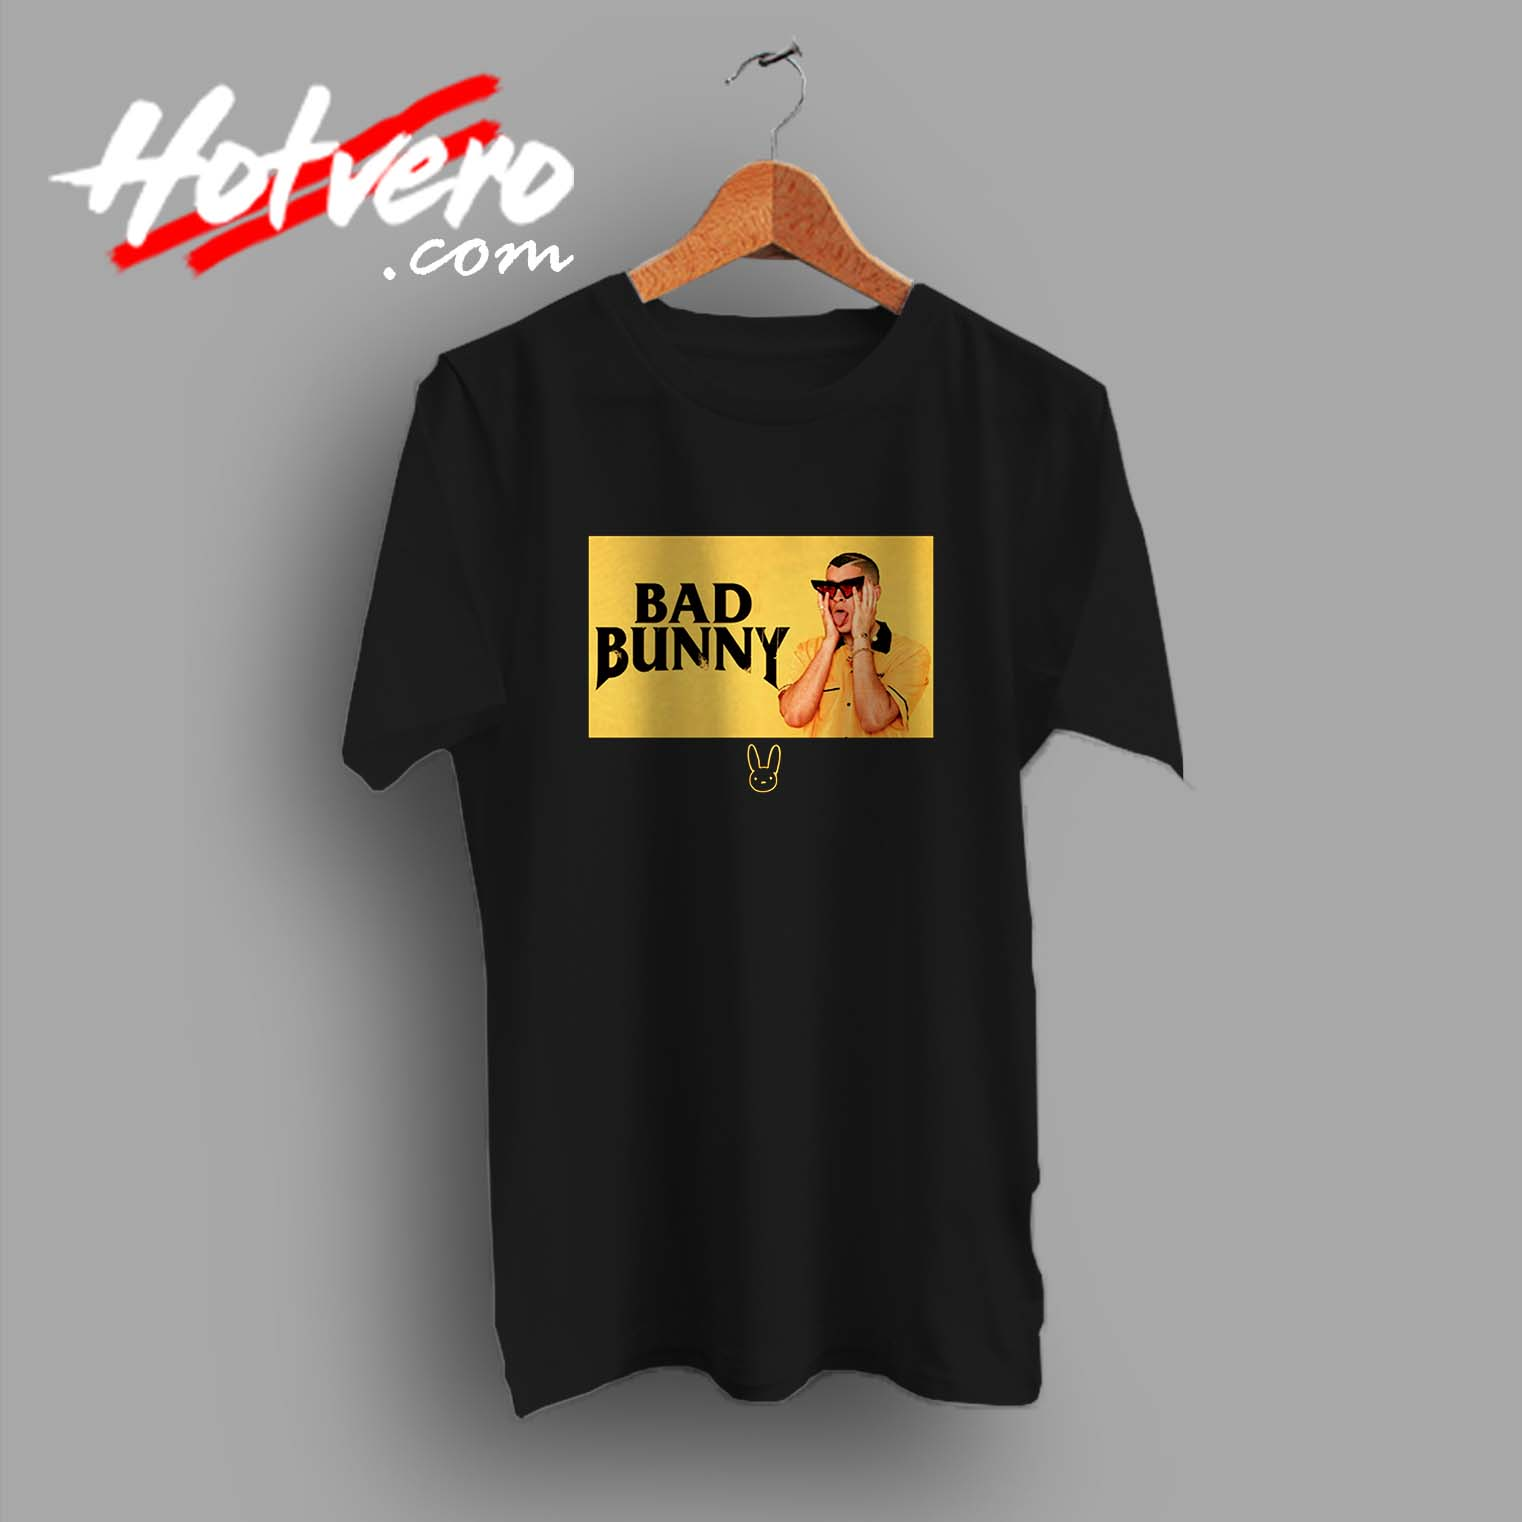 3049992f17 Bad Bunny Black And Yellow Custom T Shirt - Hotvero